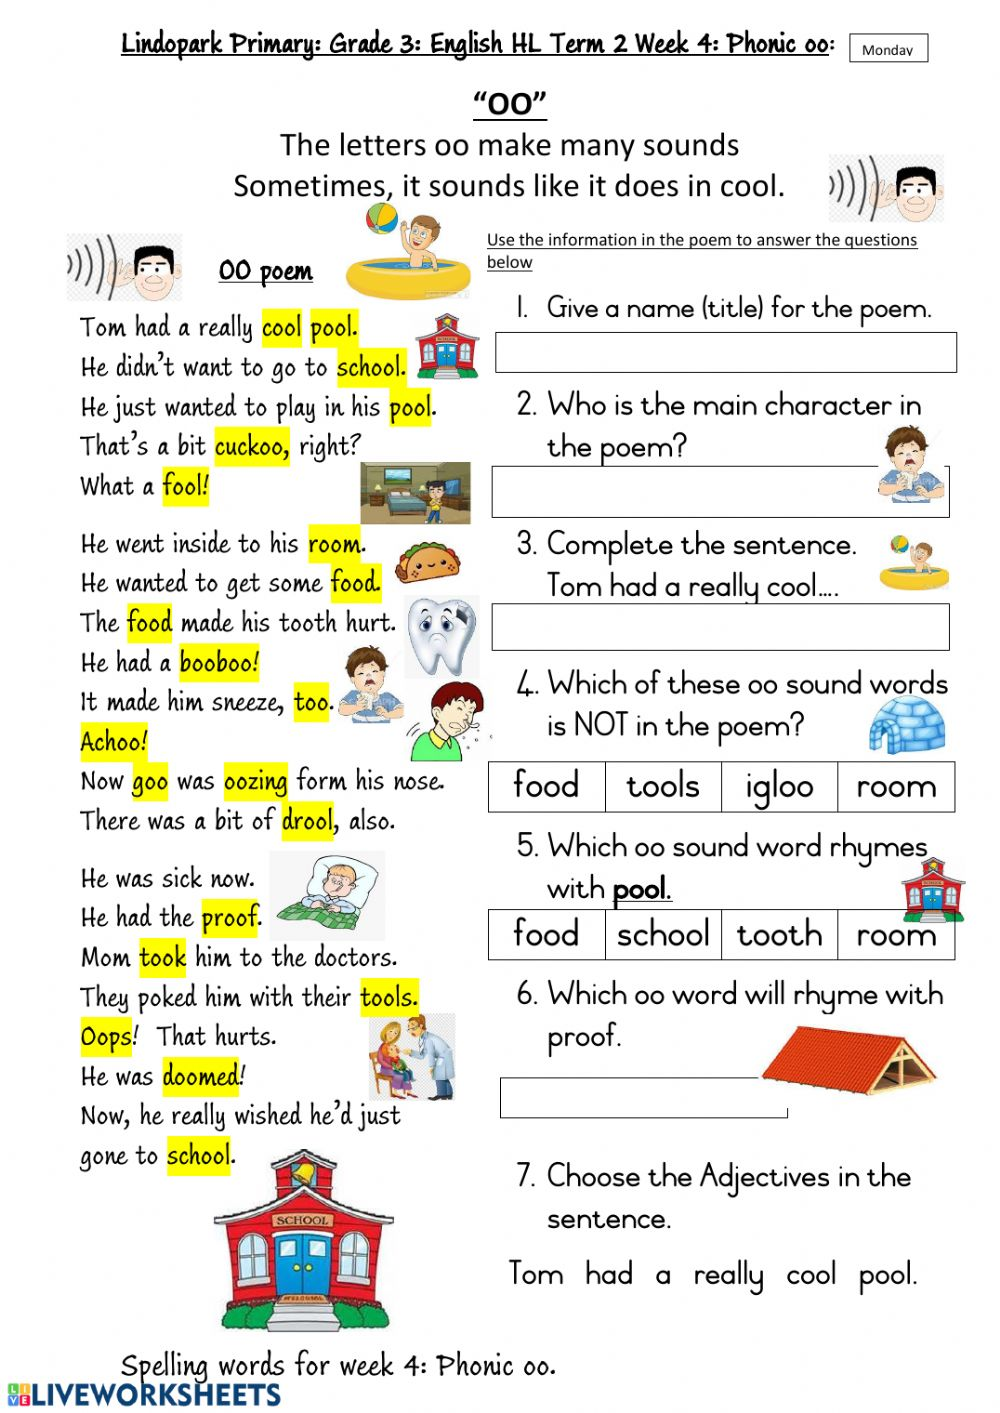 Grade 3 Hl English Term 2 Week 4 Phonic Oo Worksheet 1 Monday Worksheet